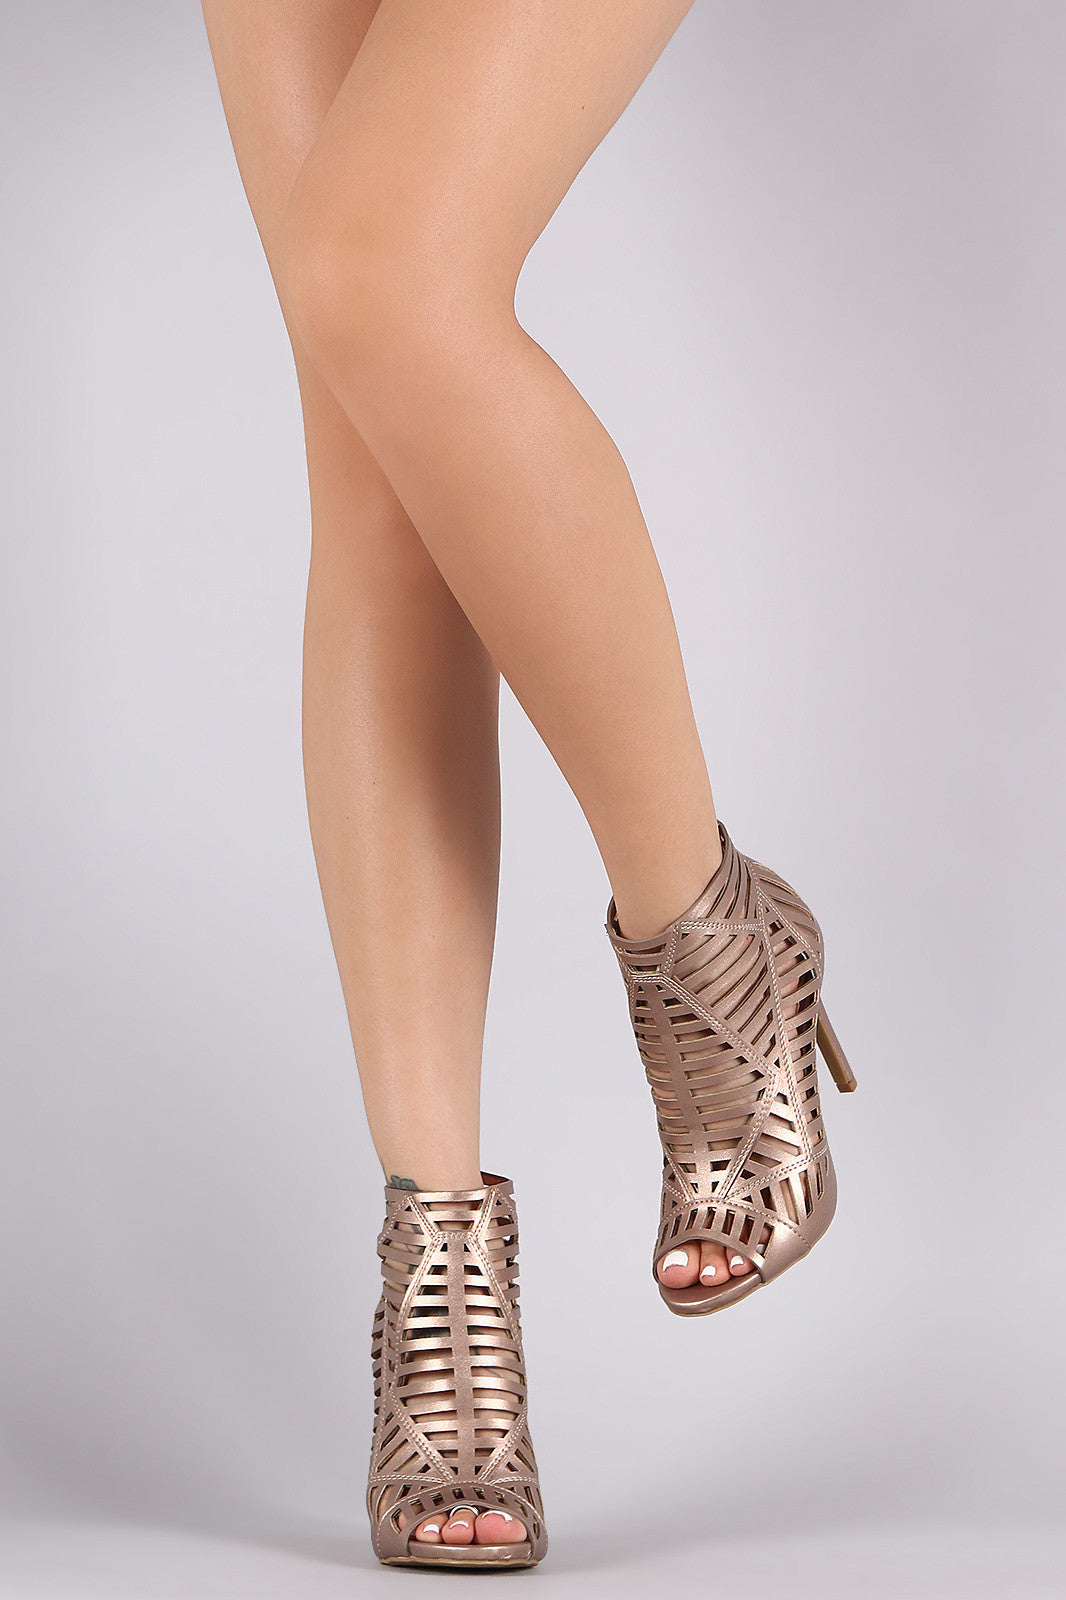 Anne Michelle Caged Peep Toe Stiletto Heel - Thick 'N' Curvy Shop - 6